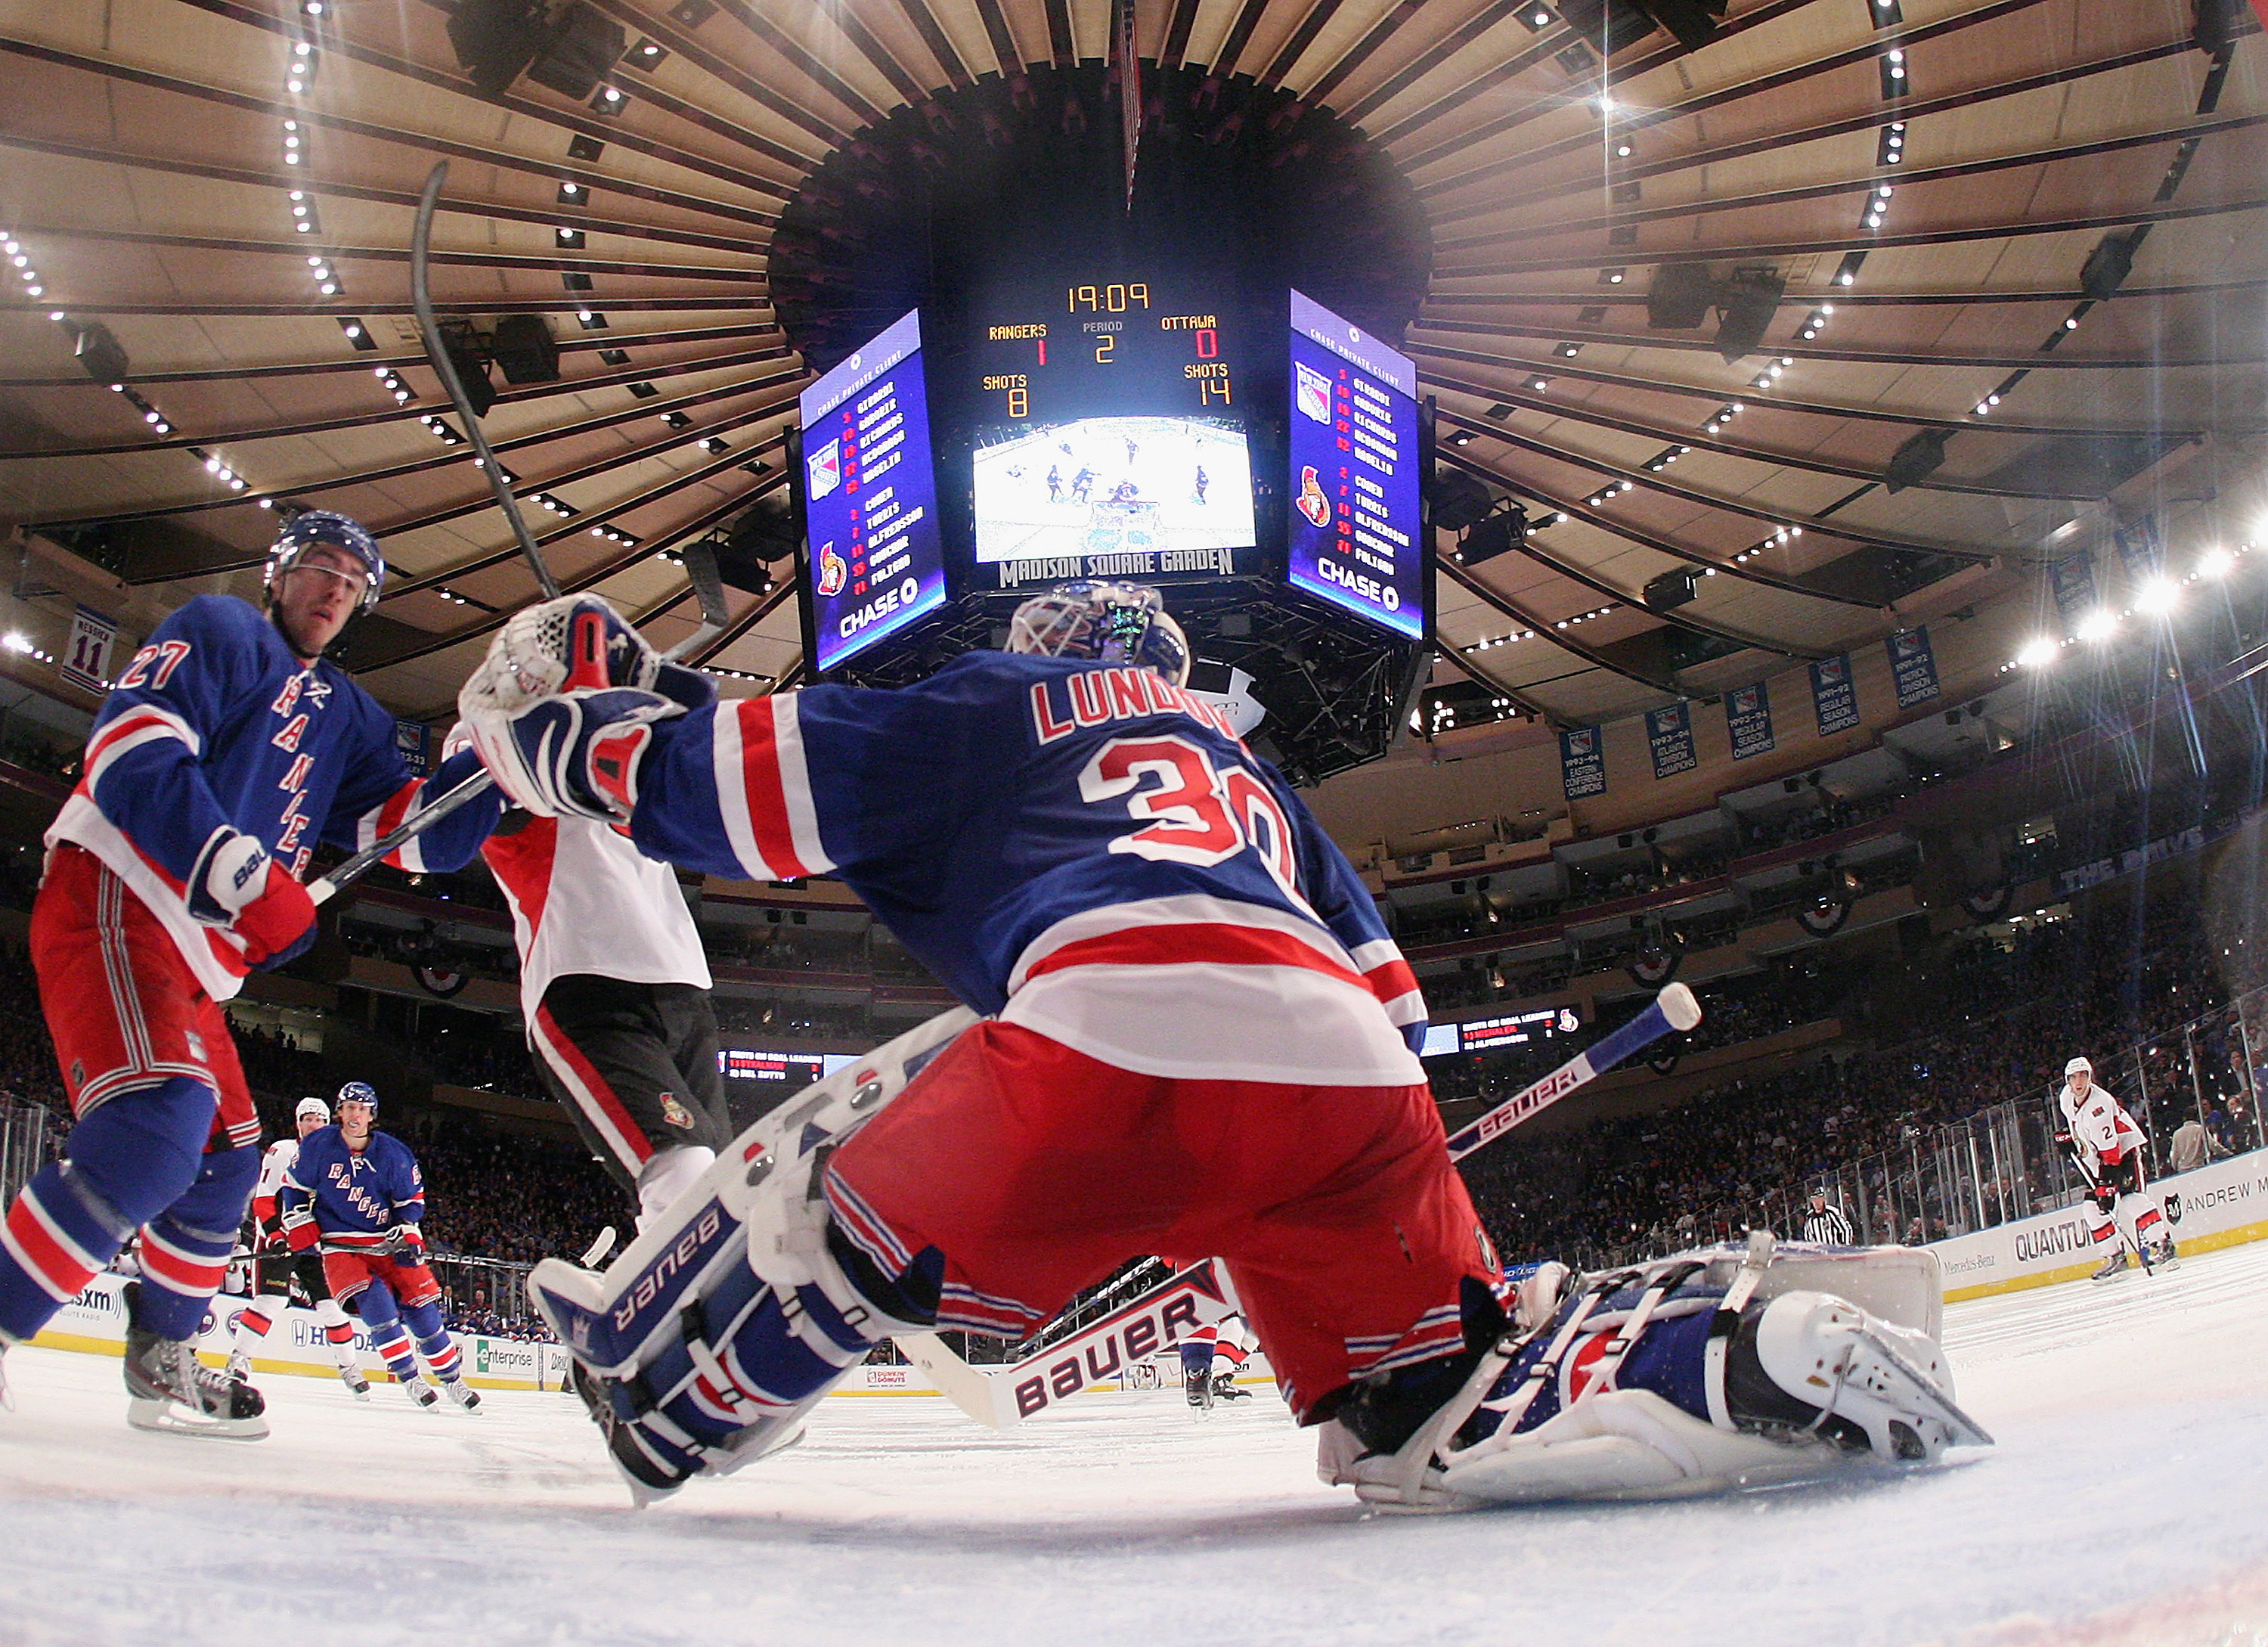 Senschirp Game Day Sens Rangers At Msg